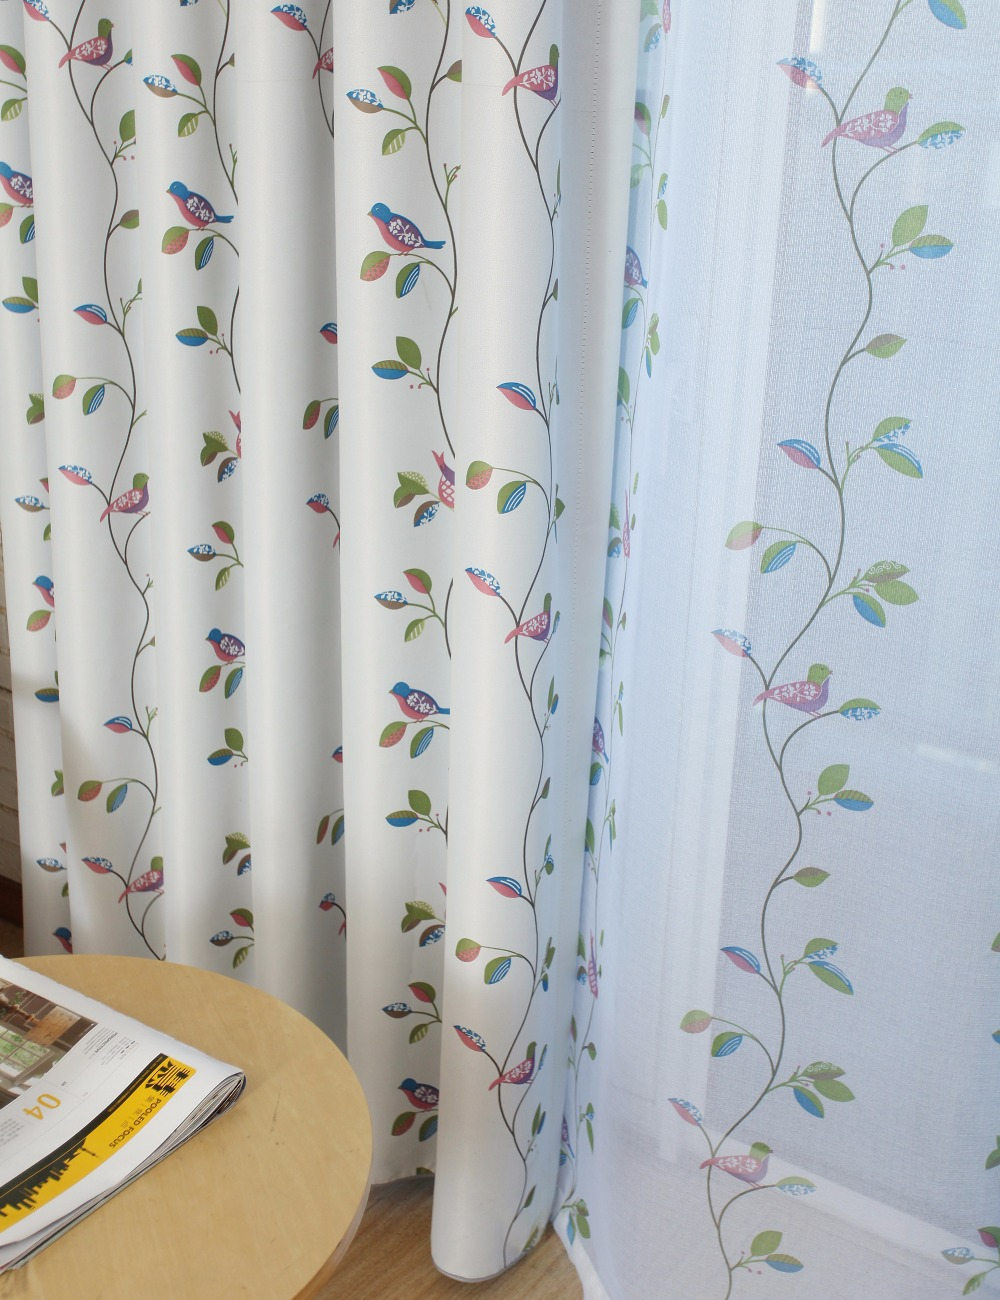 Bird sheer curtains - Printed Bird Blackout Curtains For Living Room Window Cortina Blackout Full Blind Curtains For Bedroom